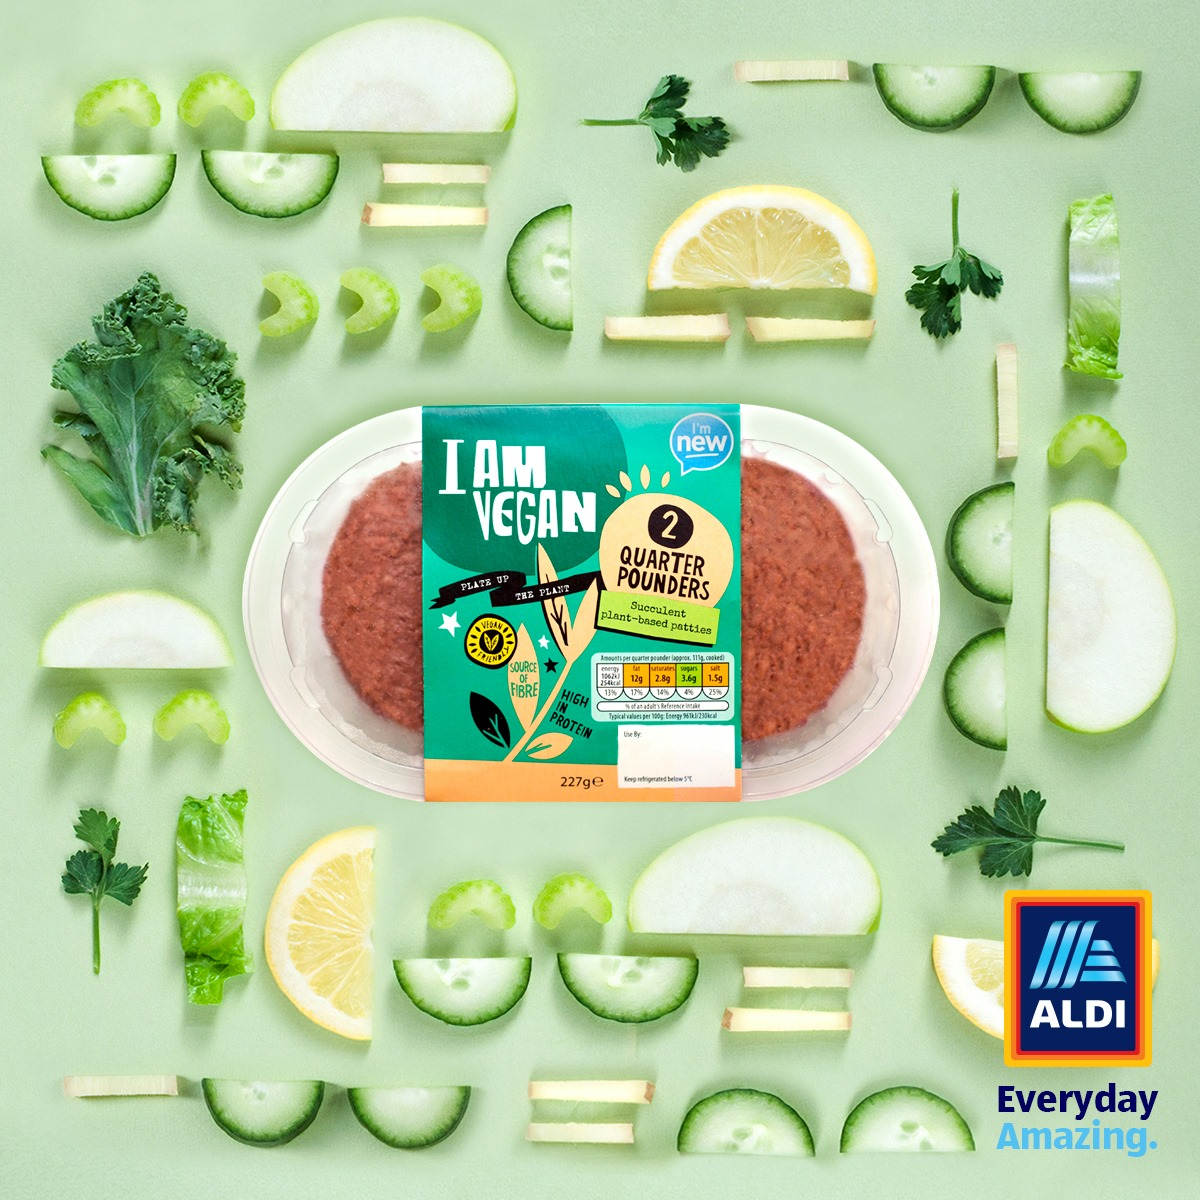 Aldi UK launches high-protein vegan quarter pounder burgers